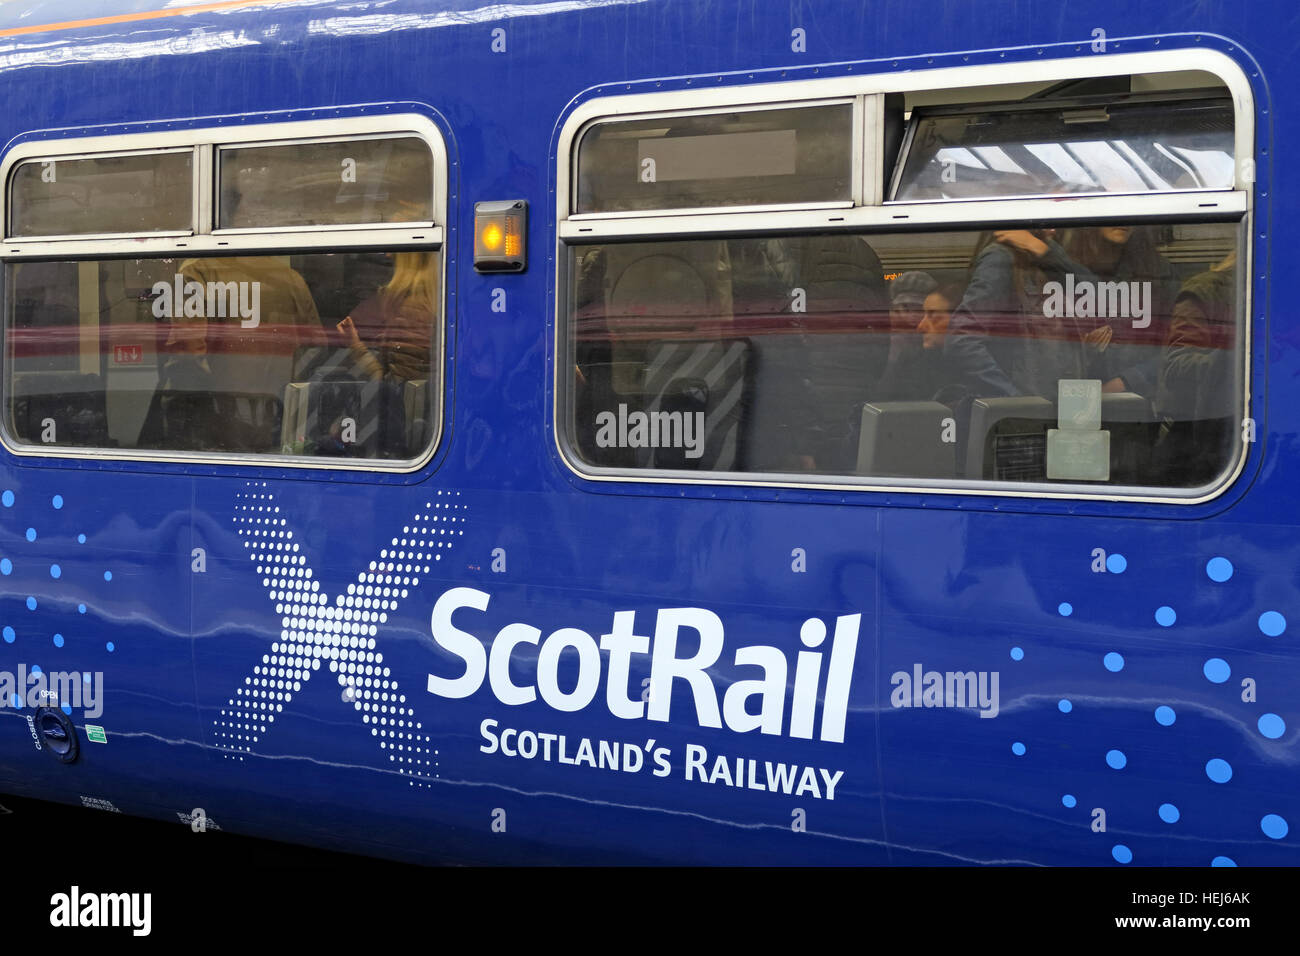 SNP,Hollyrood,back,into,state,ownership,after,poor,service,renationalise,nationalised,TOC,national,late,overcrowded,trains,fines,fine,penalty,penalties,transport,travel,infrastructure,slow,packed,Dutch,operator,devolved,powers,Scottish National Party,train operating company,Scotrail Franchise,GoTonySmith,@HotpixUK,Tony,Smith,UK,GB,Great,Britain,United,Kingdom,Scots,Scottish,British,Scotland,Glasgow,Greater,problem,with,problem with,issue with,City,Centre,cities,Urban,Urbanist,town,infrastructure,transport,tour,tourism,tourists,urban,attraction,attractions,livery,Alba,delay,delays,delayed.late,later,Buy Pictures of,Buy Images Of,Images of,Stock Images,Tony Smith,United Kingdom,Great Britain,Greater Glasgow,British Isles,Glasgow City Centre,City Centre,Scotrail problems,Scotrail delays,Scot Rail problems,Scot rail delays,Scotlands Railway,Reile na h-Alba